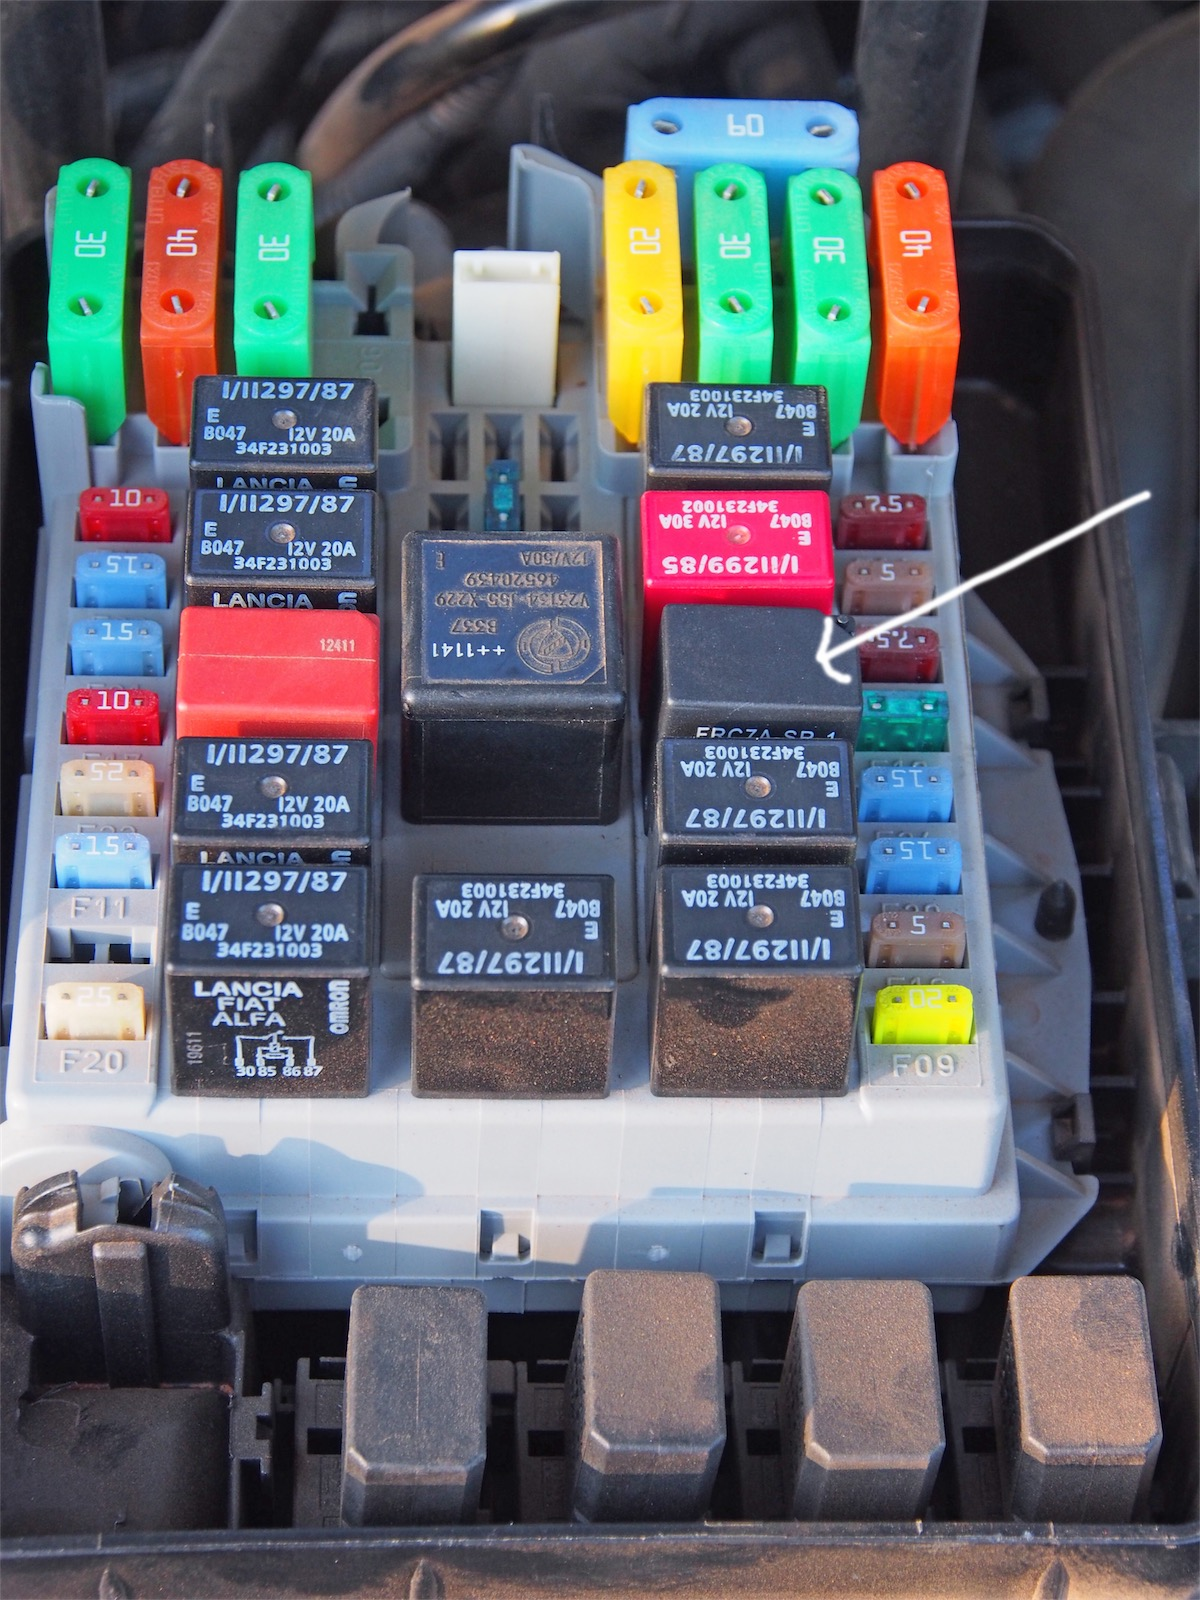 relay2 going bush iveco daily fuse box diagram 2007 at fashall.co